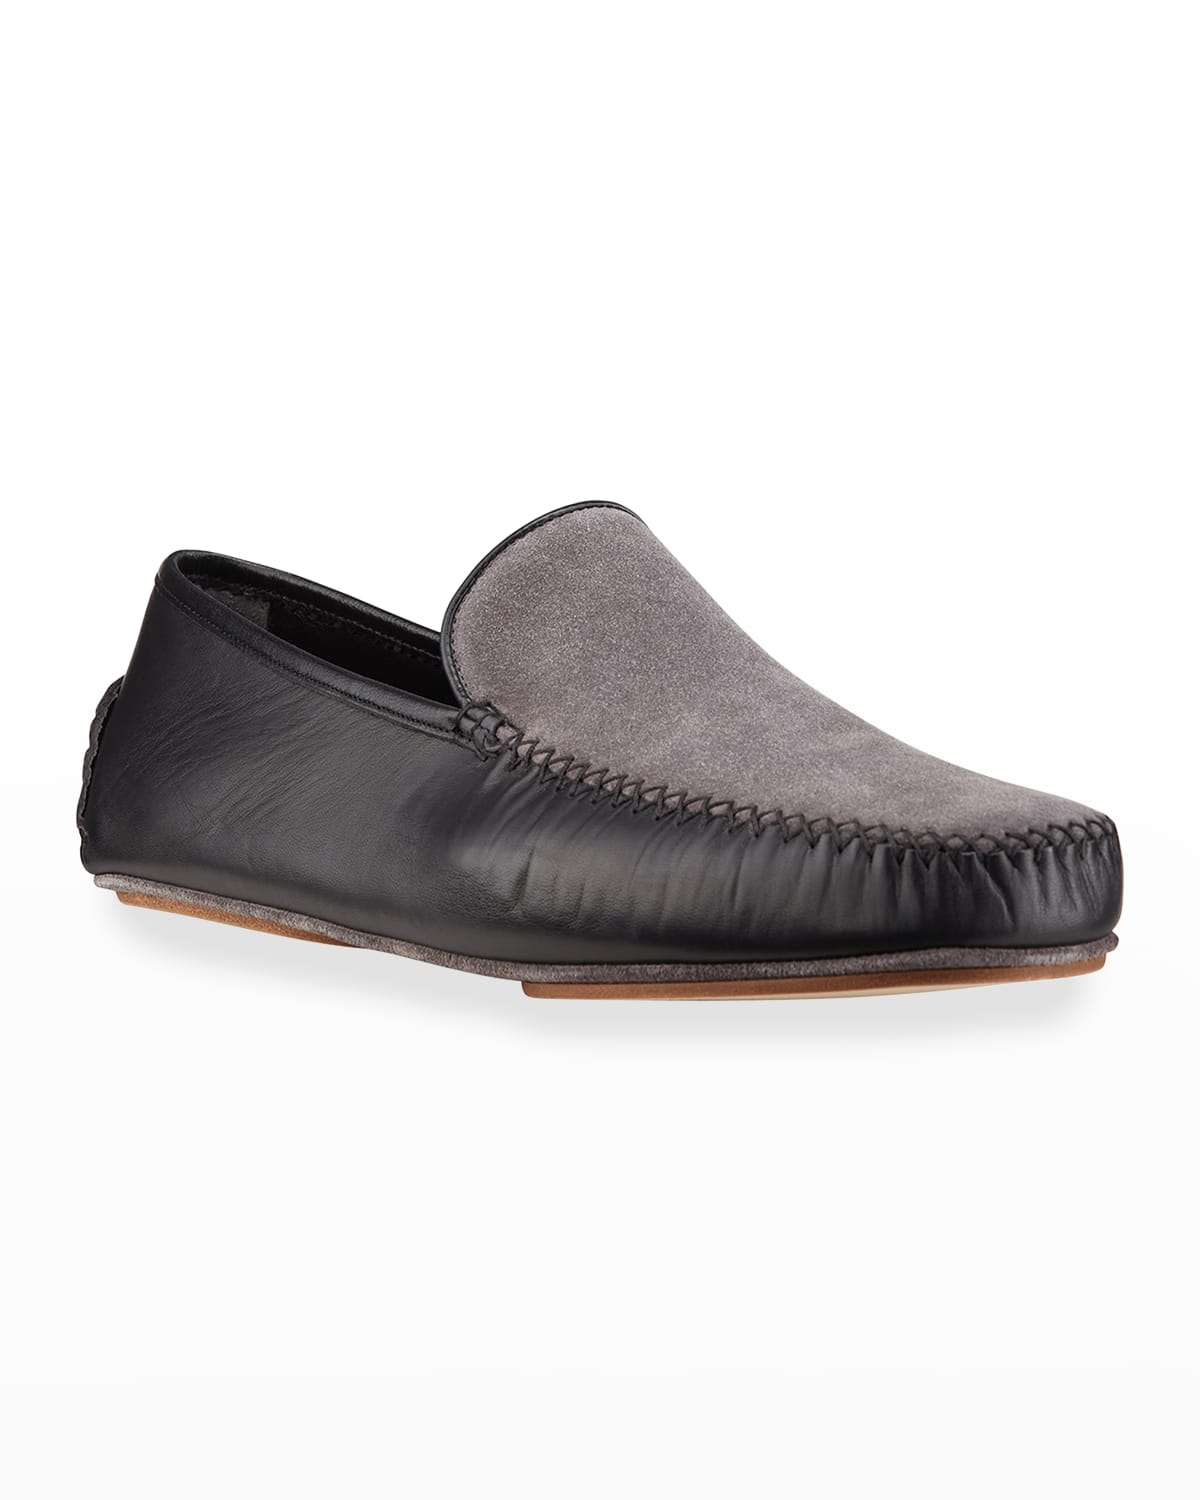 Men's Mayfair Leather and Suede Slippers